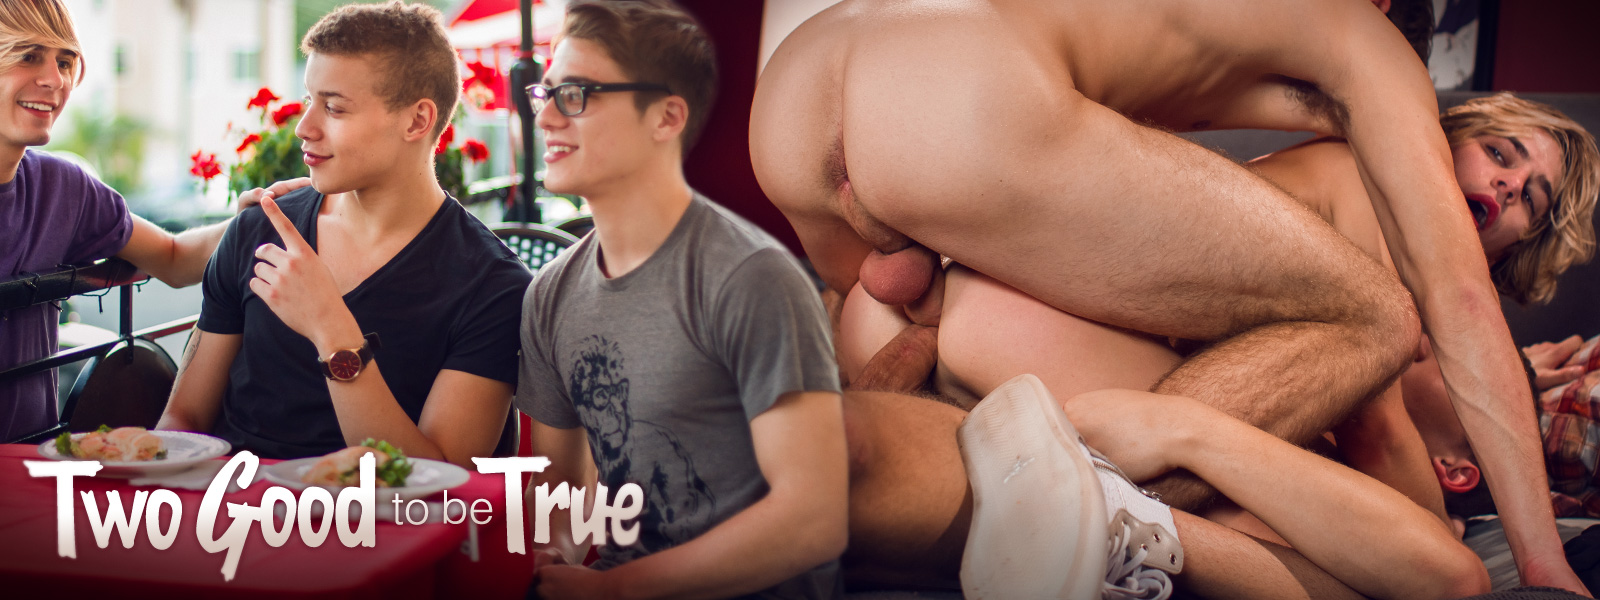 Two Good to be True - Kyle Ross and Blake Mitchell & Corbin Colby